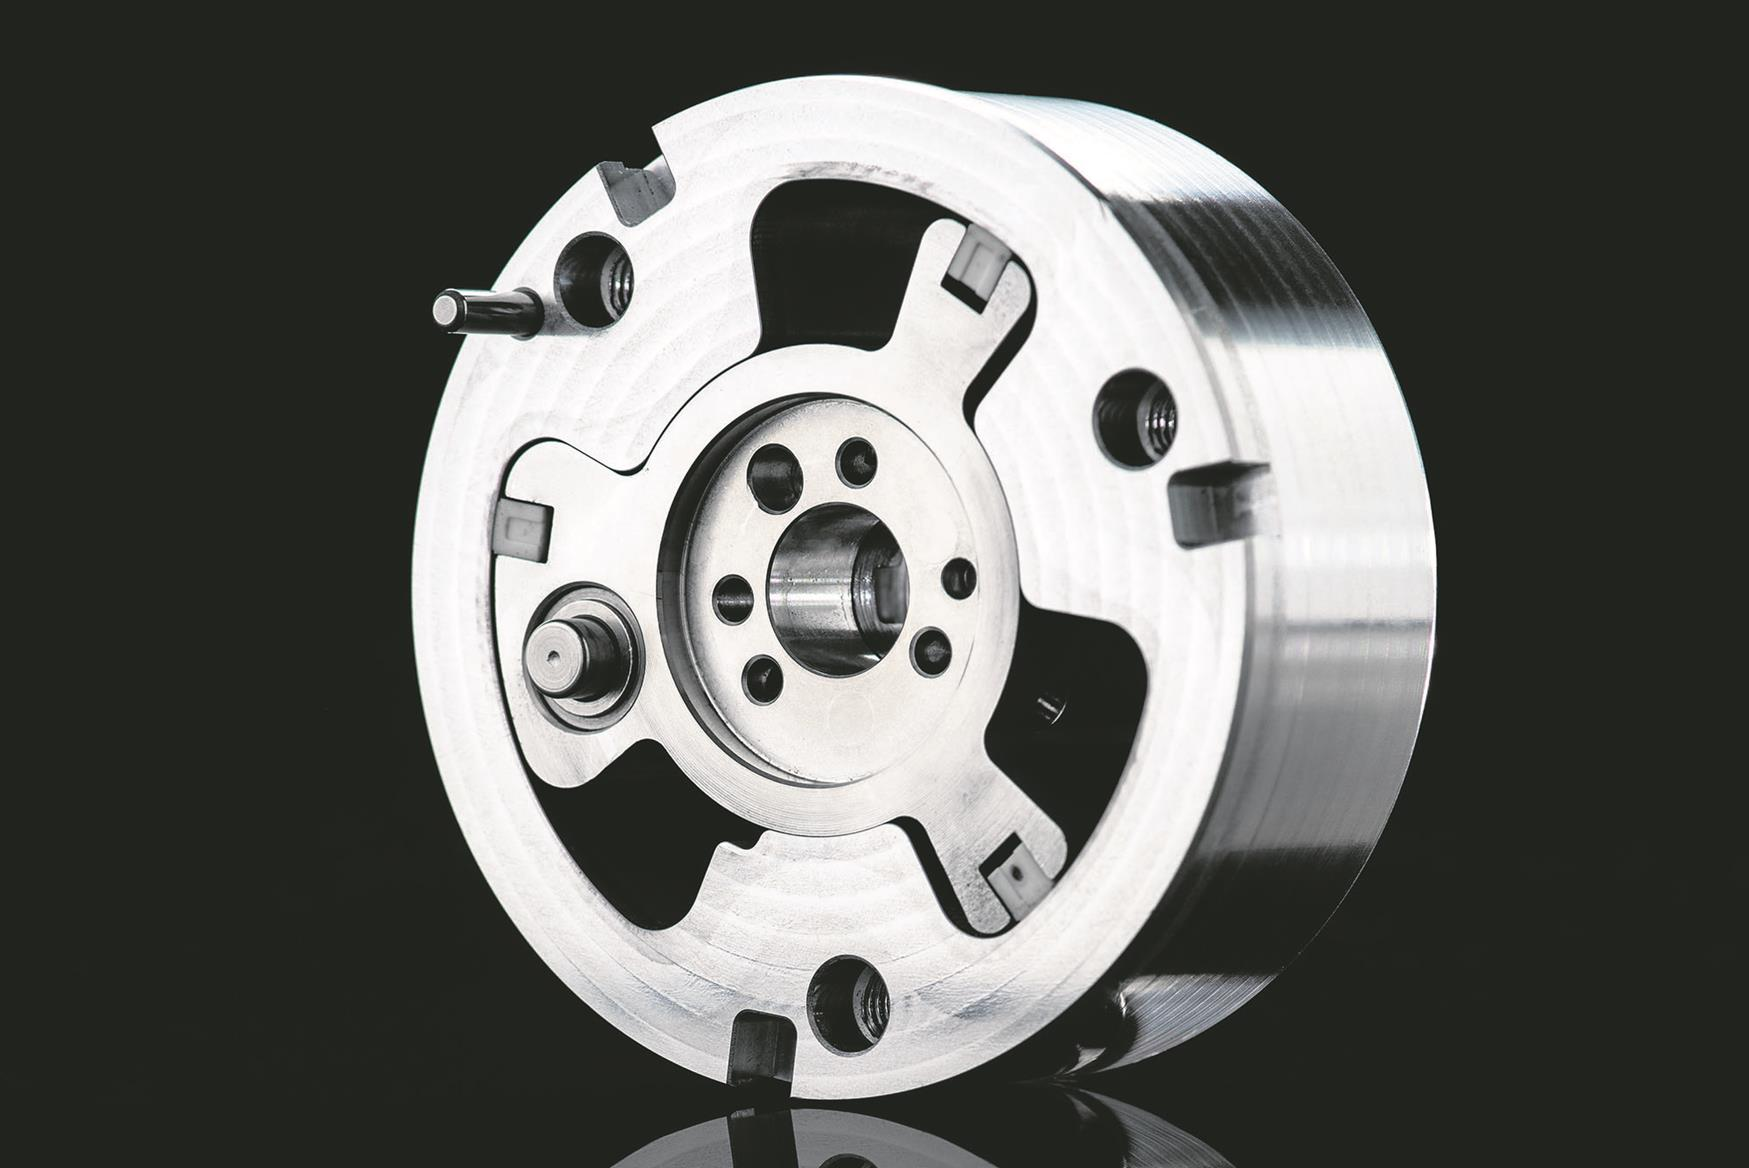 The internal mechanism of the cambelt pulley can alter valve overlap by between 0 and 50 degrees